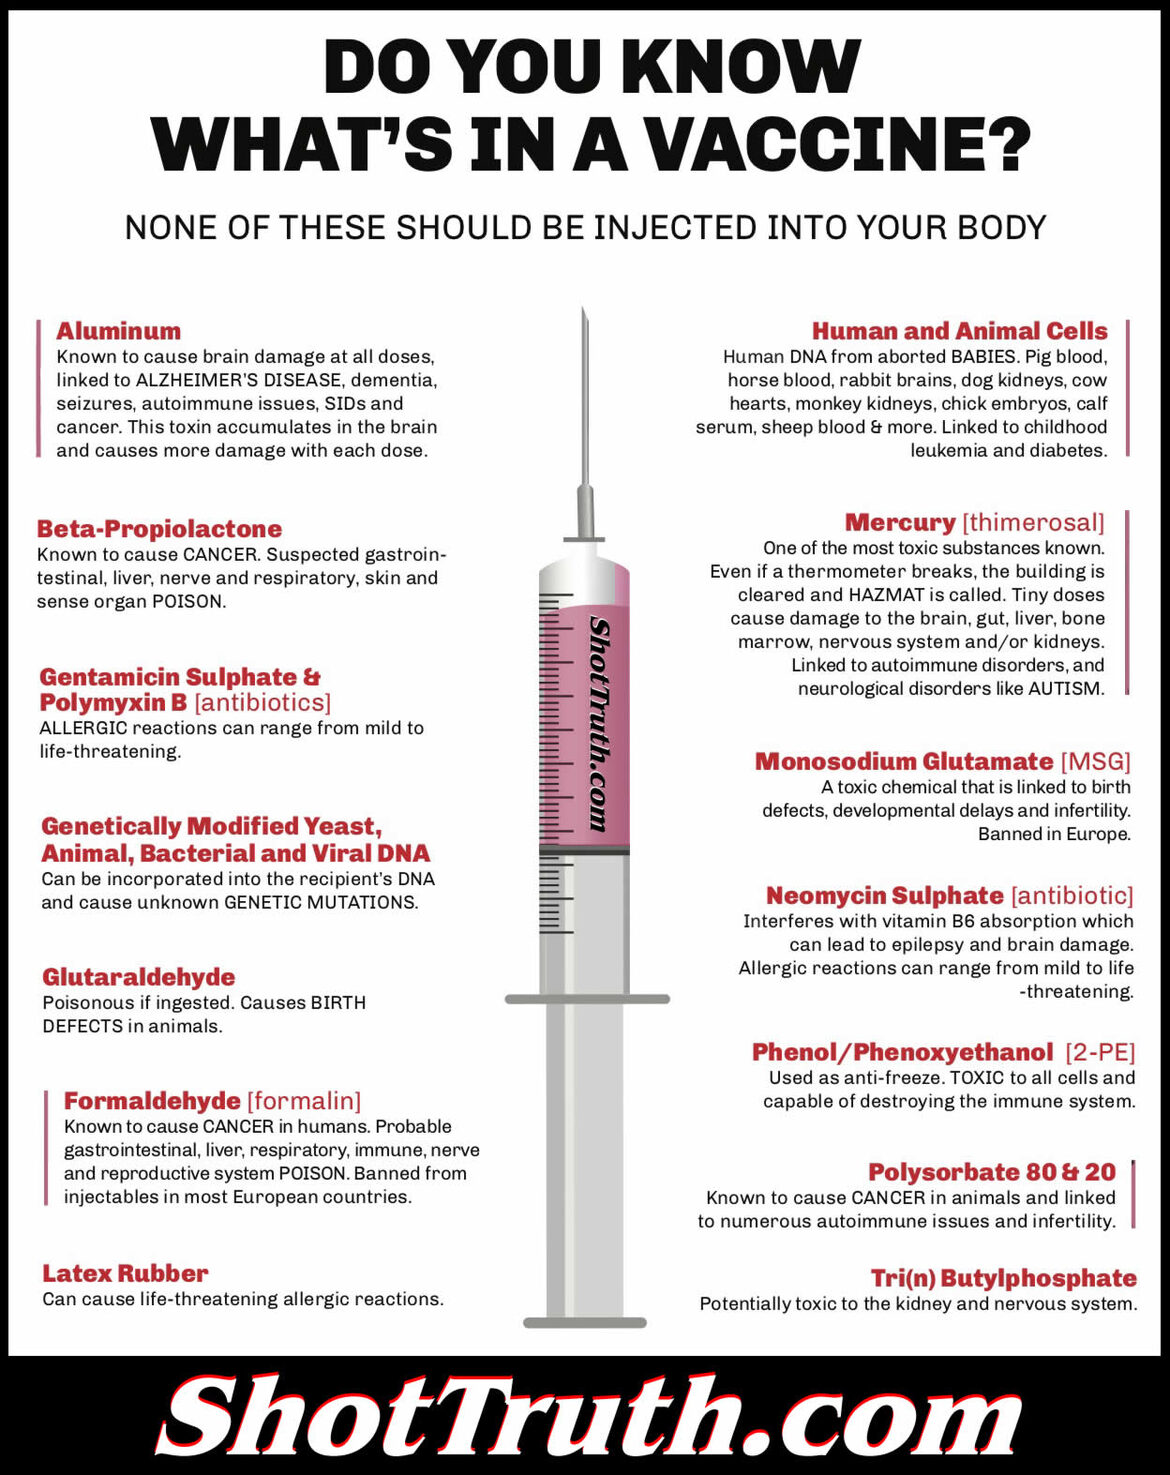 do you know what's in a vaccine?